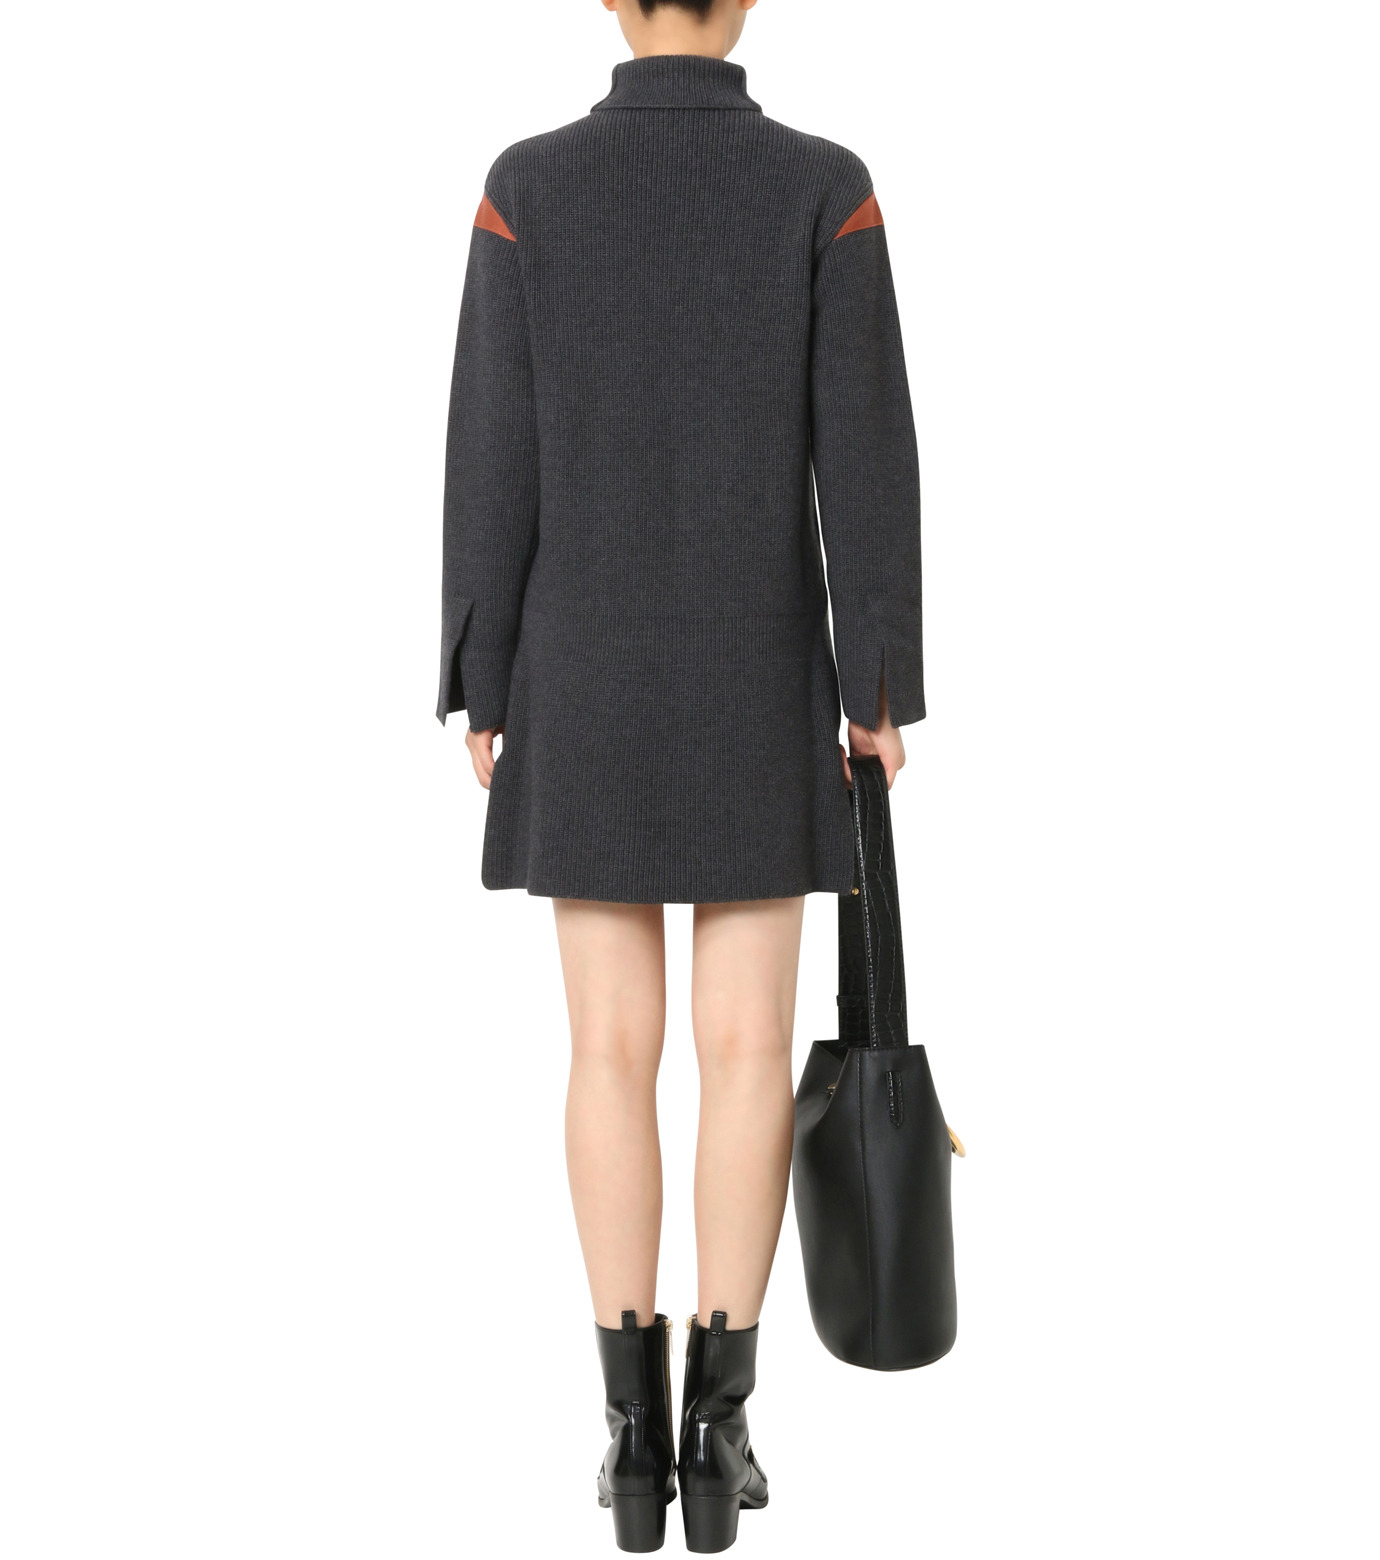 Stella McCartney(ステラマッカートニー)のClean Ribs Turtleneck Dress-CHARCHOL GRAY(ニット/knit)-427388-S1672-12 拡大詳細画像2